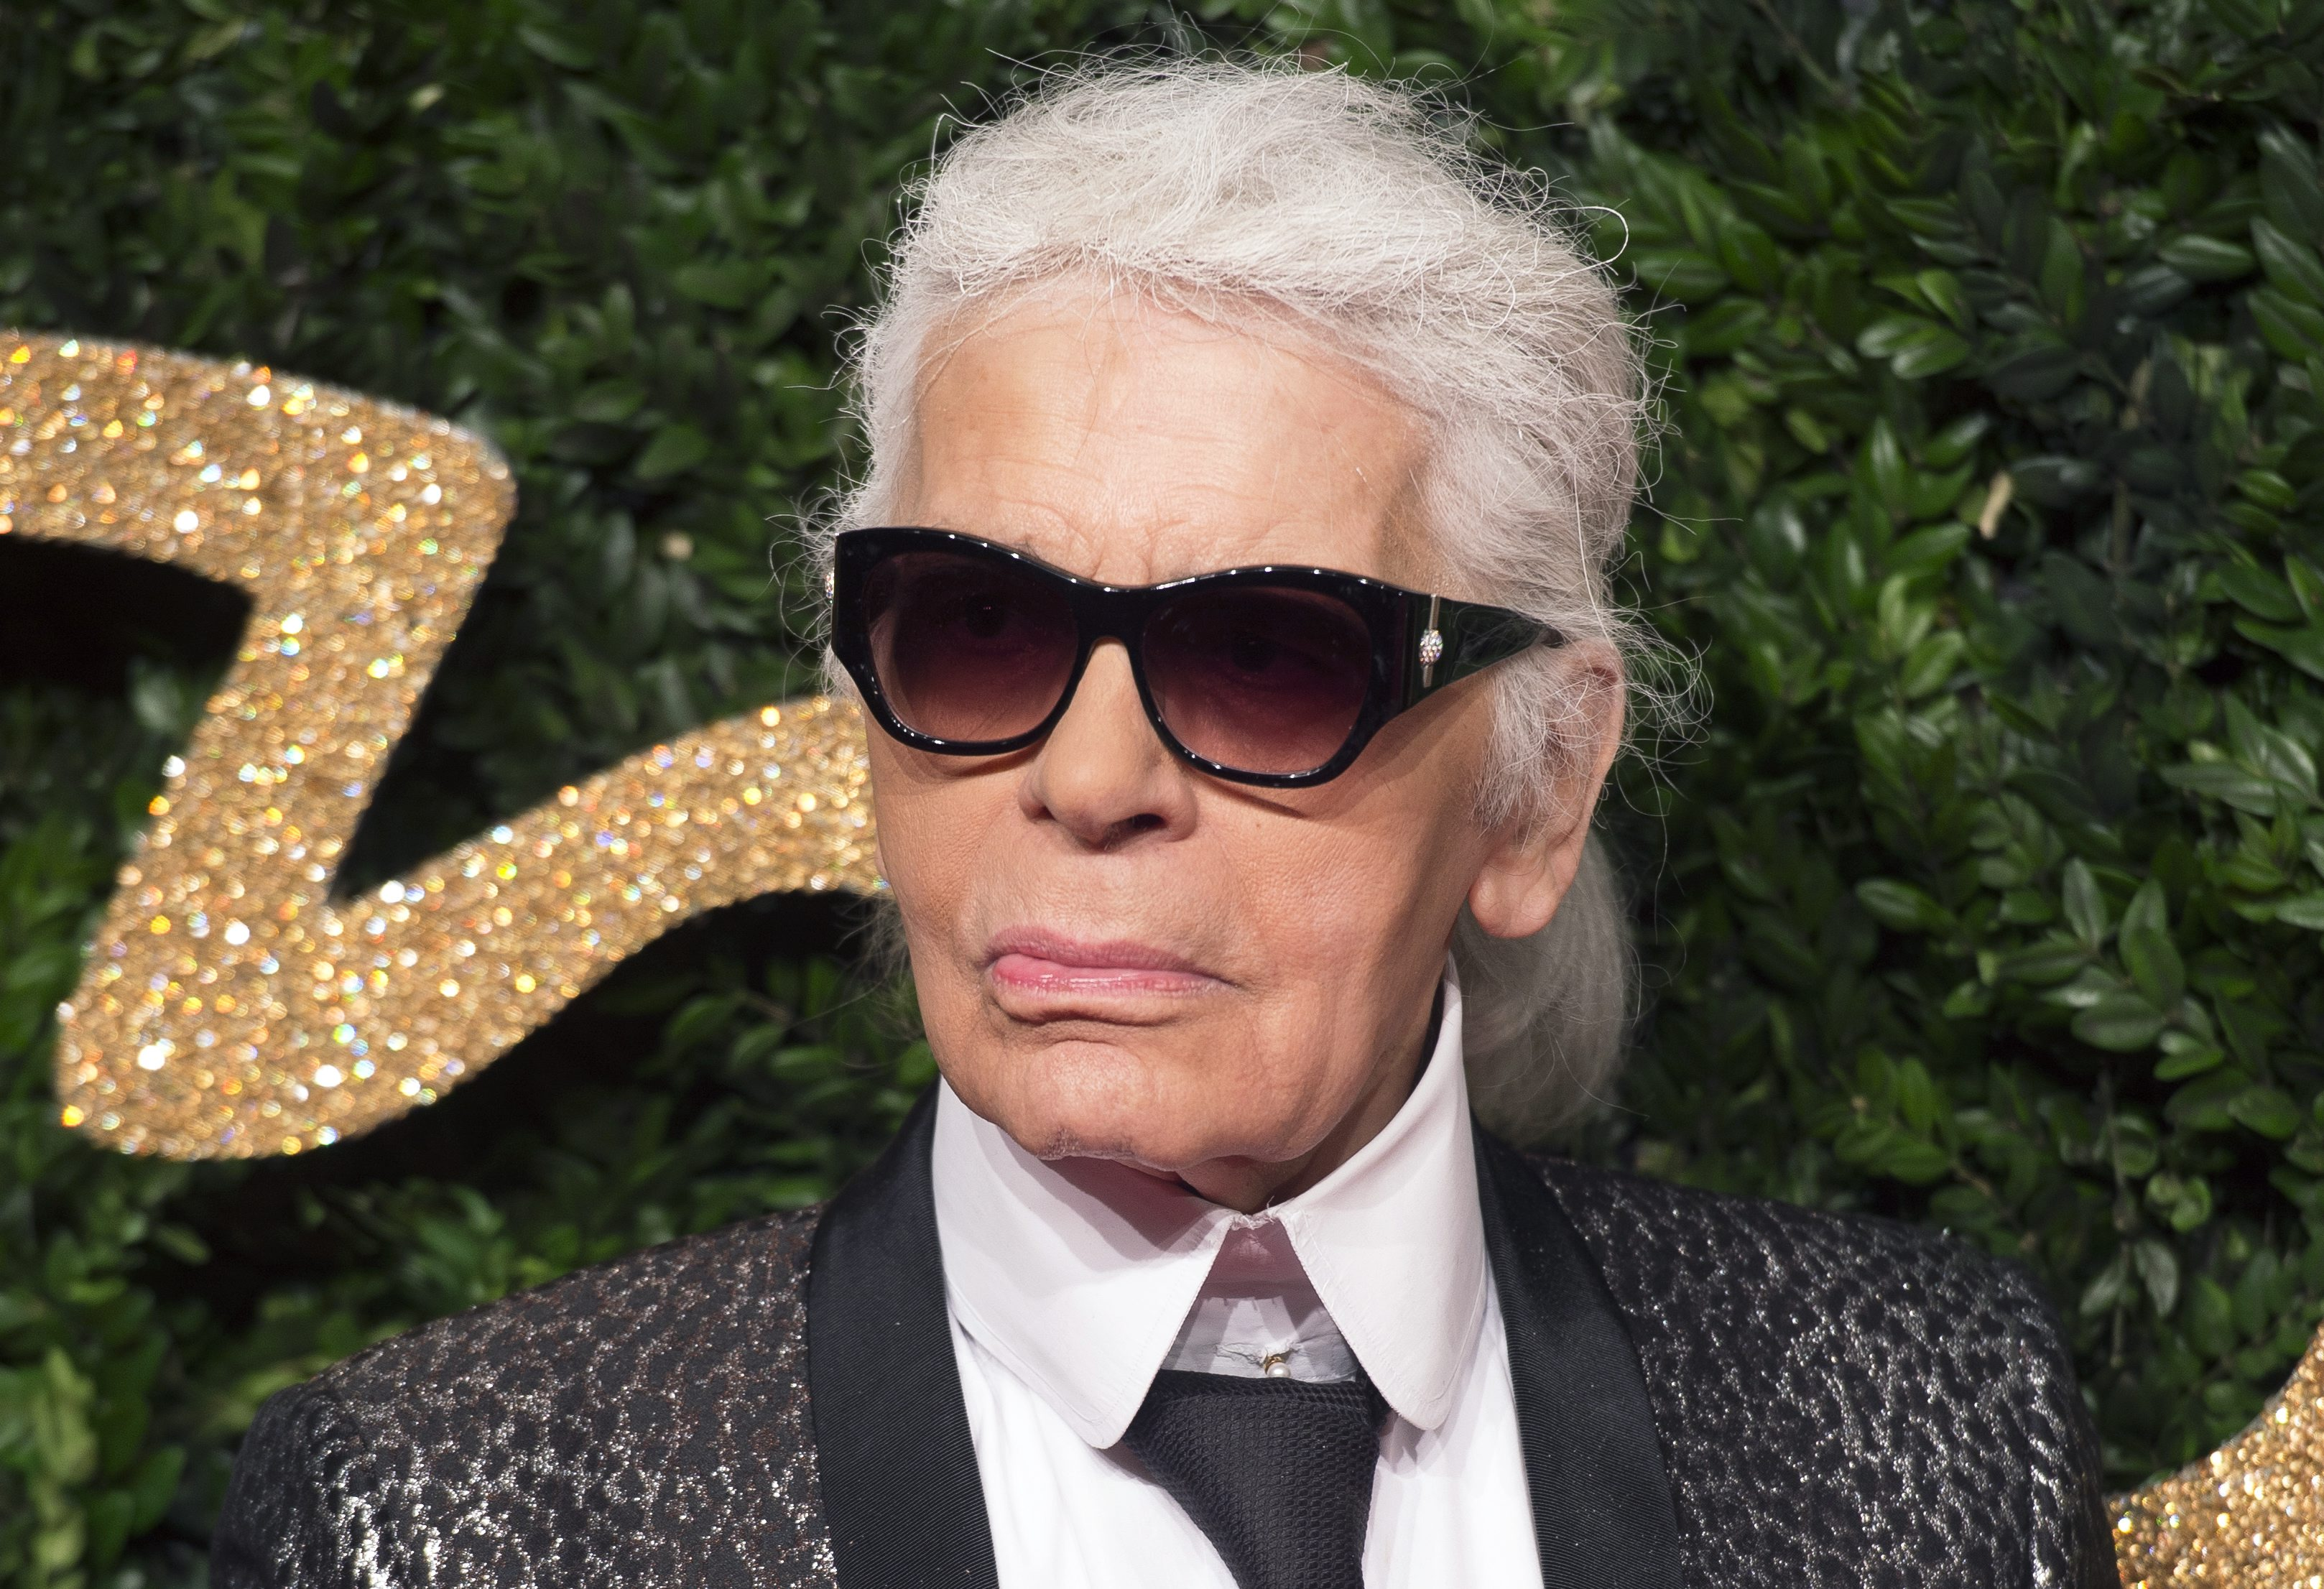 Iconic couturier Karl Lagerfeld has died